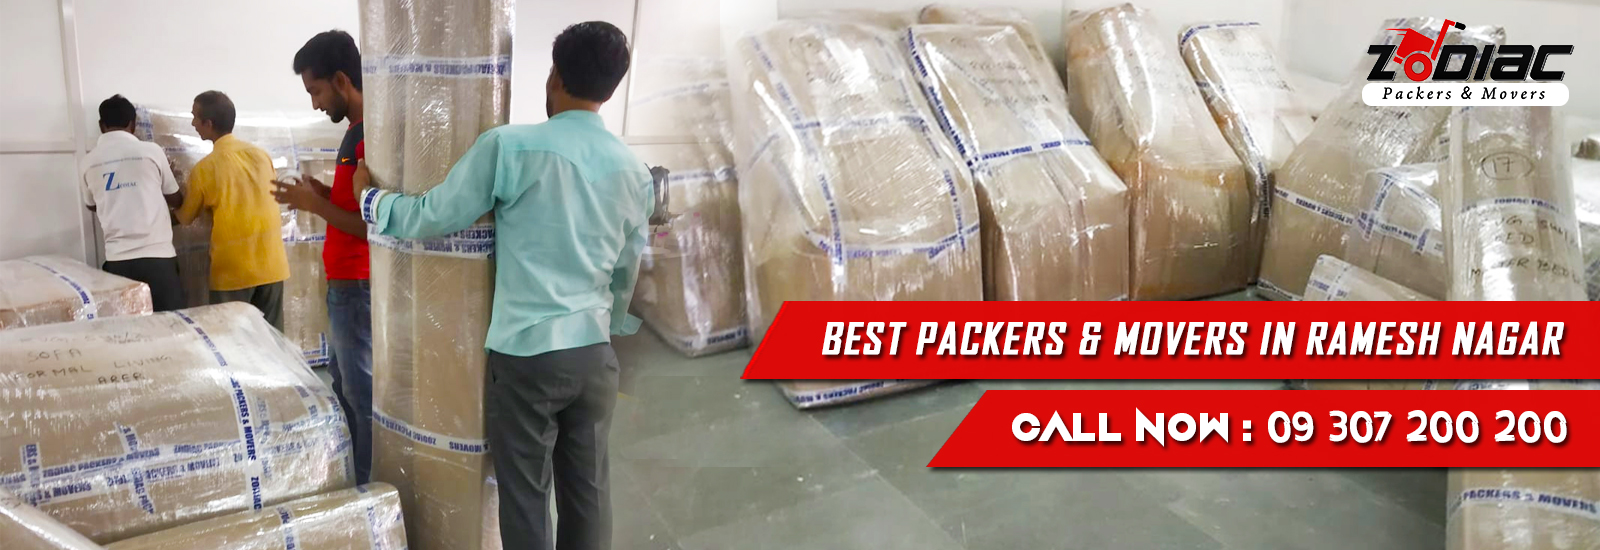 Packers and Movers in Ramesh Nagar